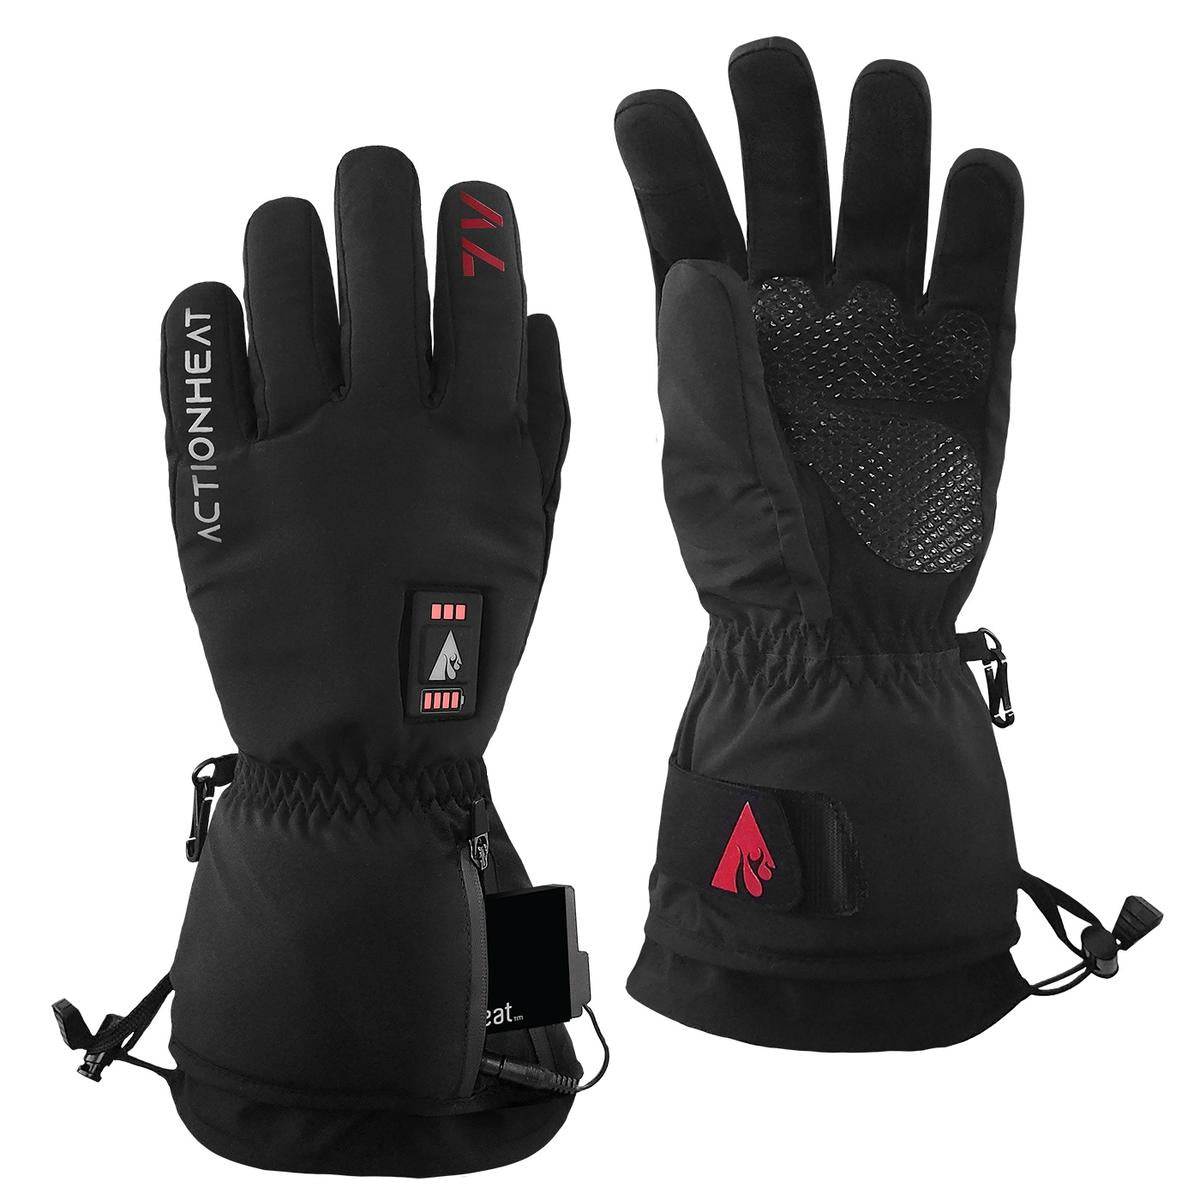 ActionHeat 7V Men's Everyday Heated Gloves - Full Set